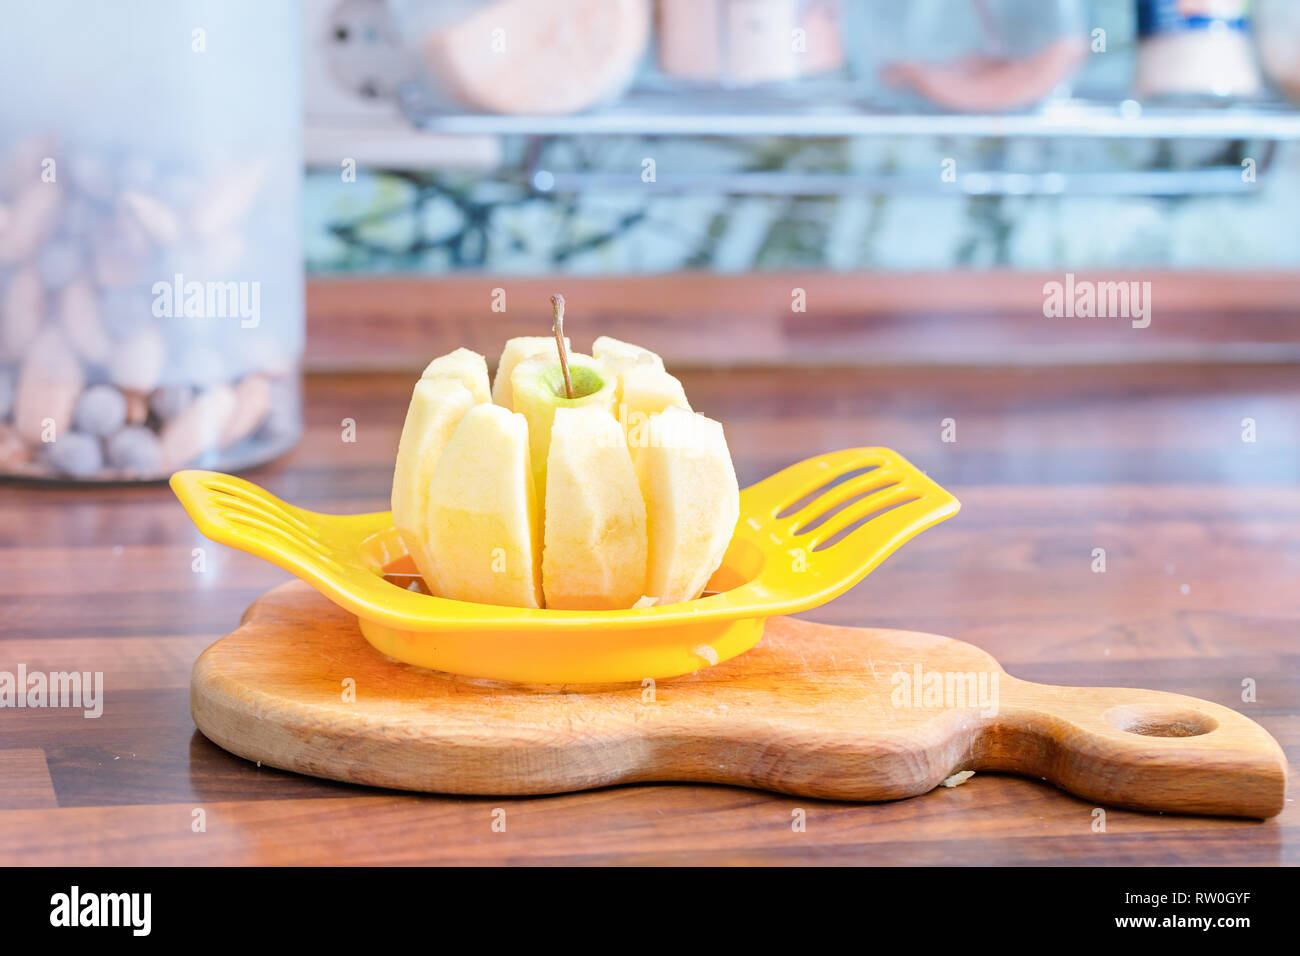 Cutting the apple into slices with a special device. - Stock Image